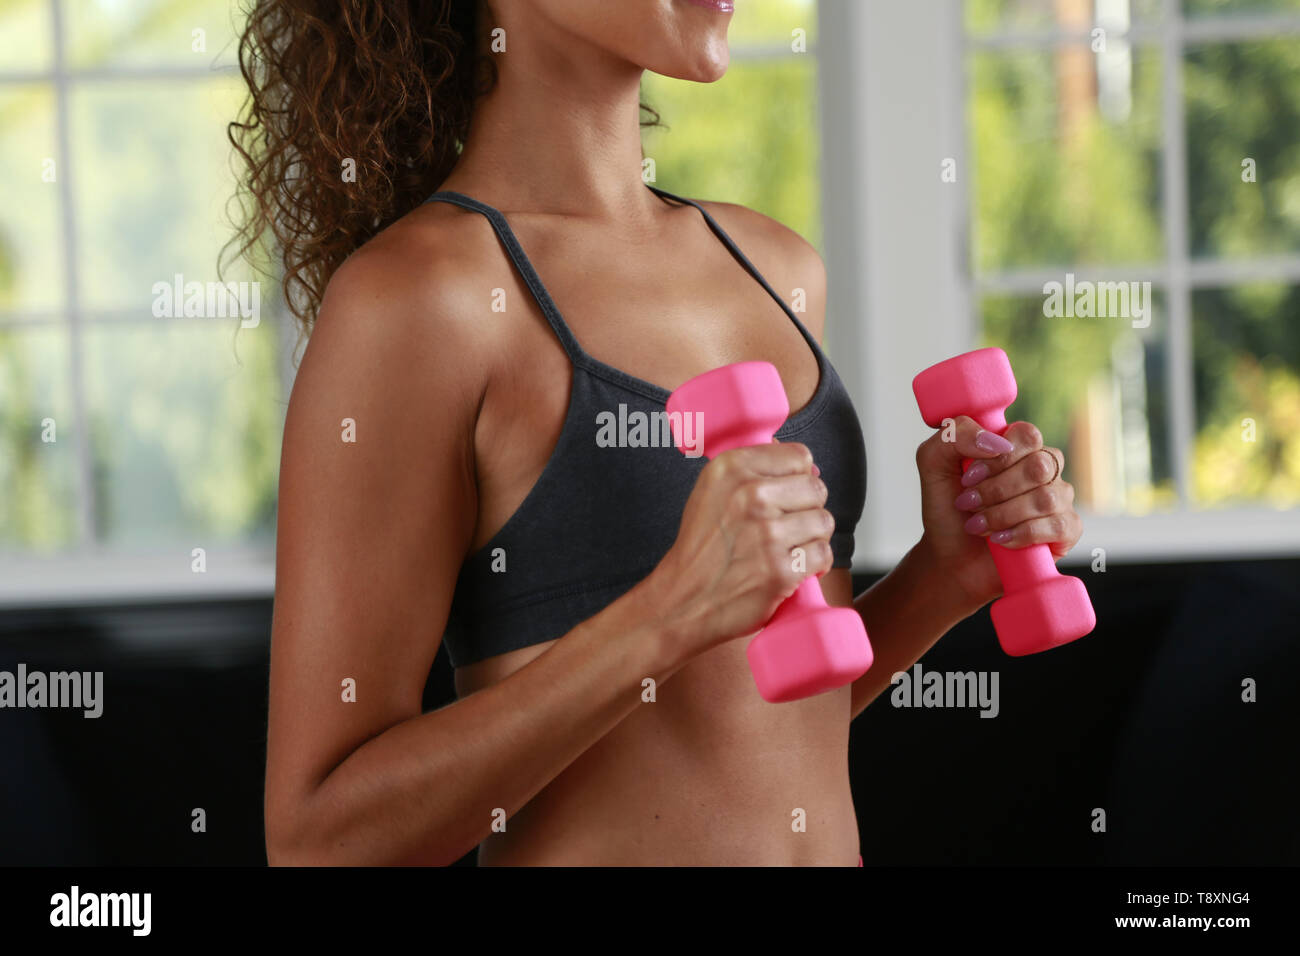 San Diego, CALIFORNIA, USA. 9th Nov, 2018. November 9, 2018 - San Diego, California, USA - A woman does yoga while using weights in a home in San Diego. Credit: KC Alfred/ZUMA Wire/Alamy Live News - Stock Image